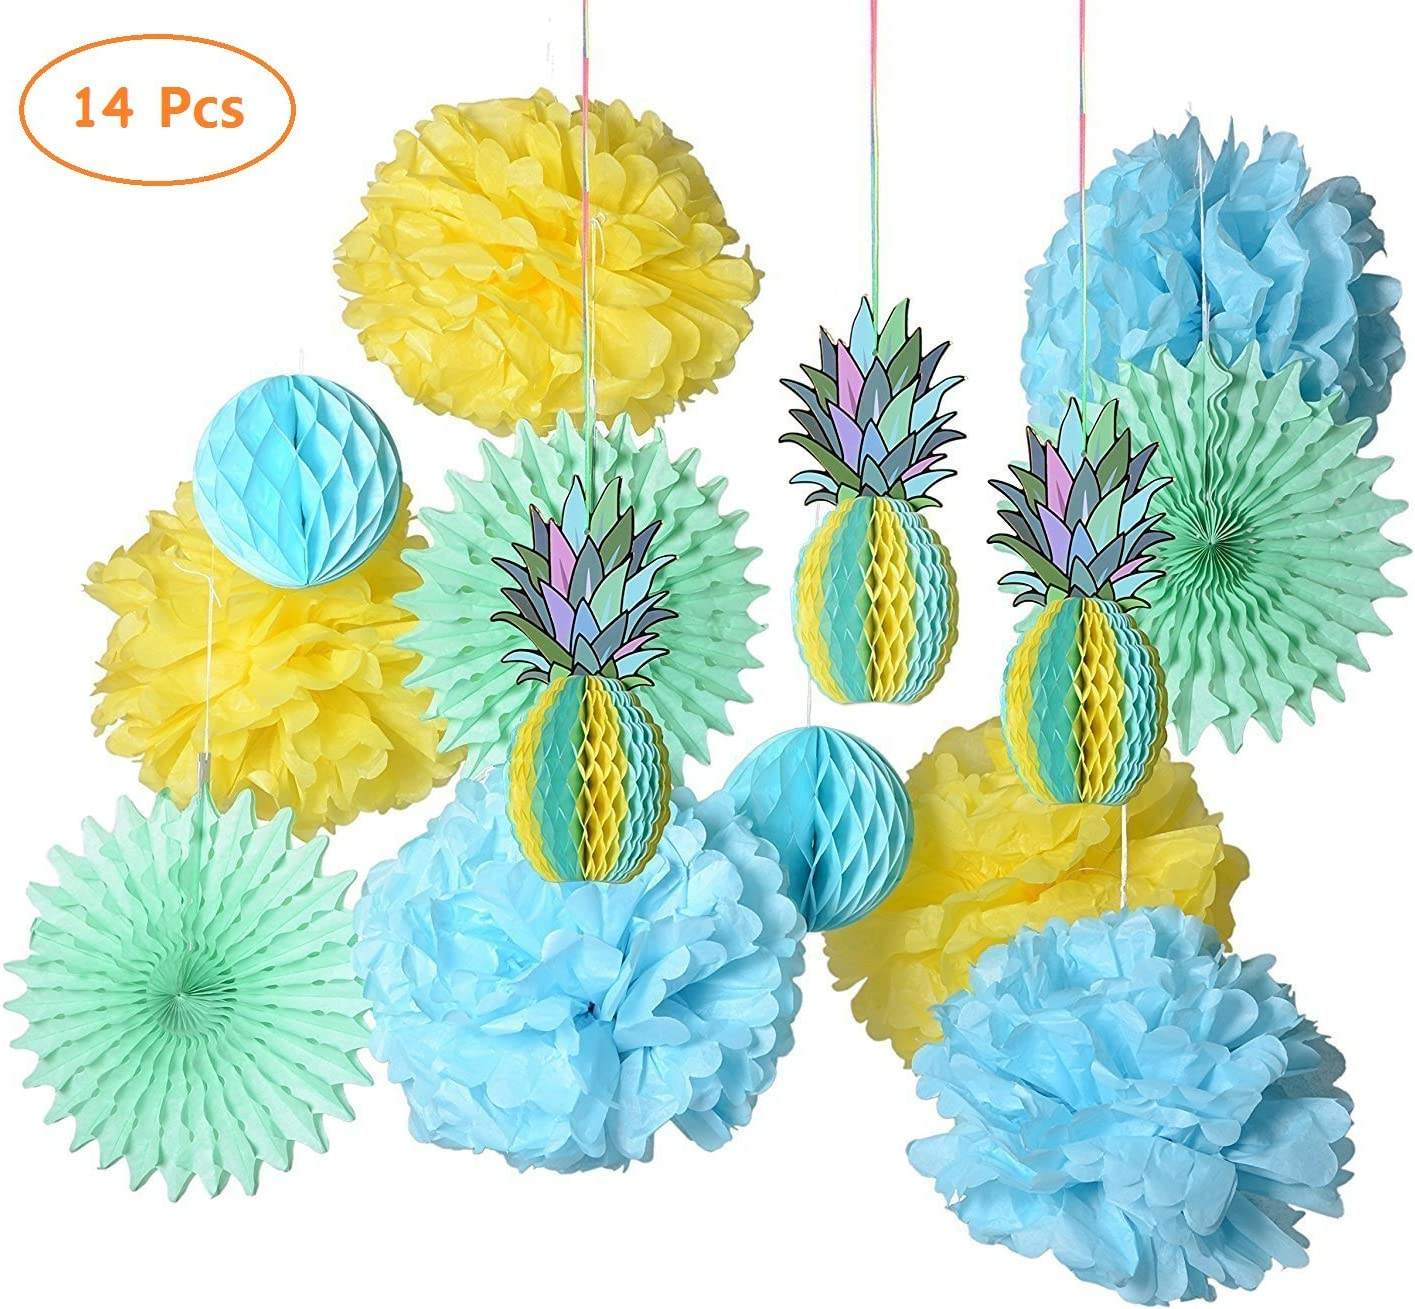 paper jazz Multicolored Paper Honeycomb Pineapple Table Centerpiece Pompom Fan kit Hanging Decoration Decor for Summer Hawaiian laua Tiki Beach Tropical Fruit Party Birthday (Mint Green Set)